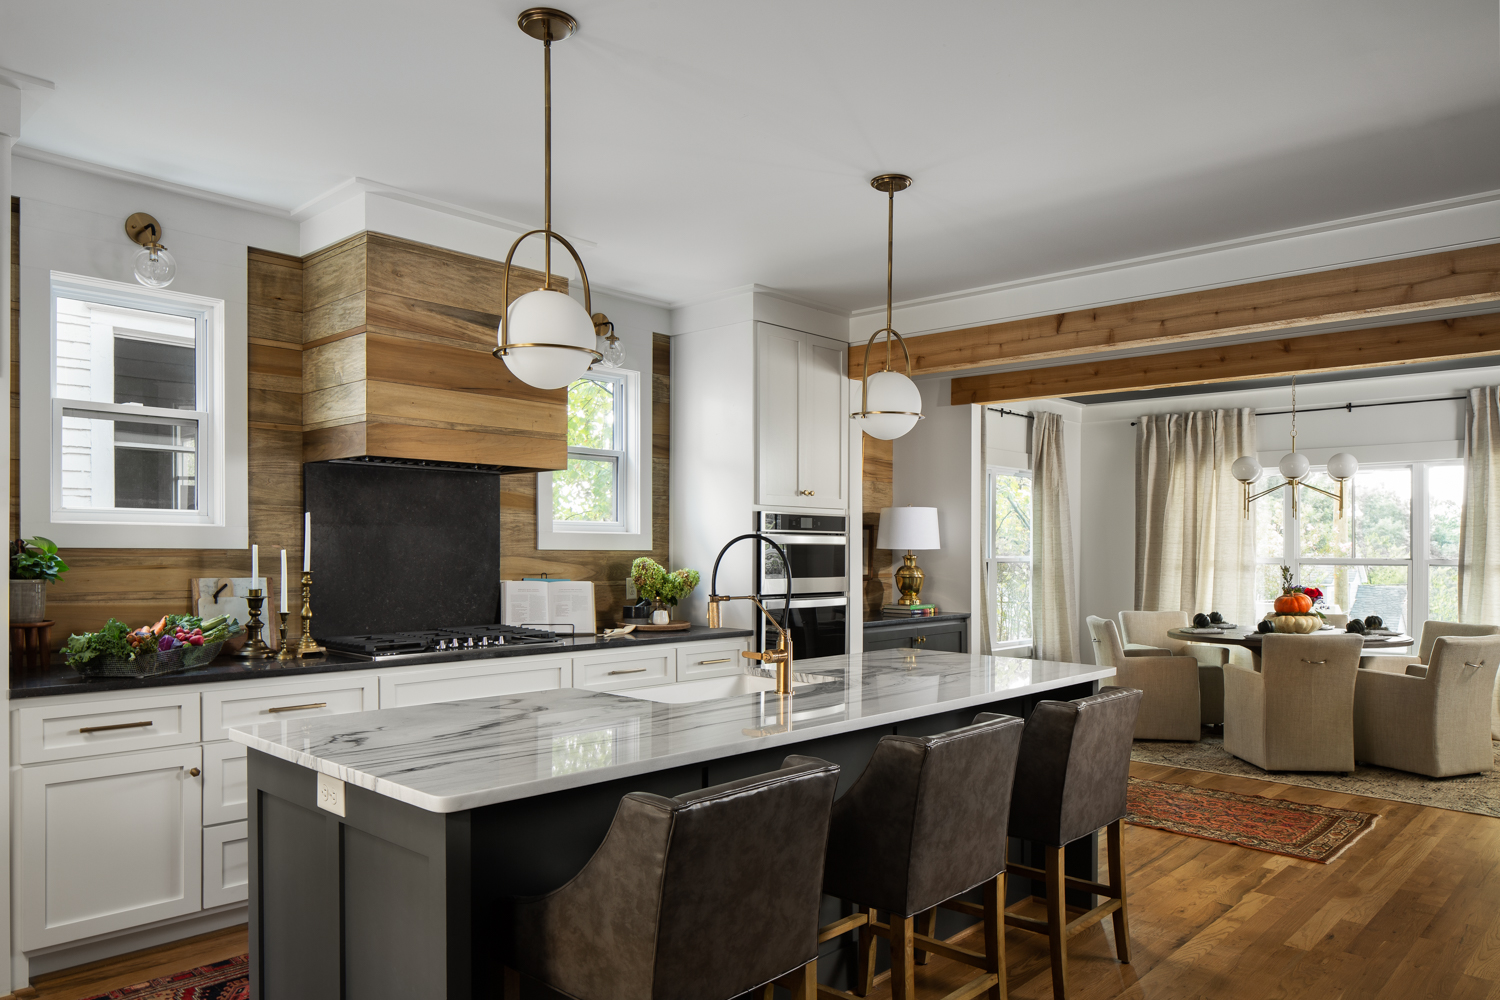 Project Highland - Residential new construction photographed for Willow Homes and Willow Design Studio